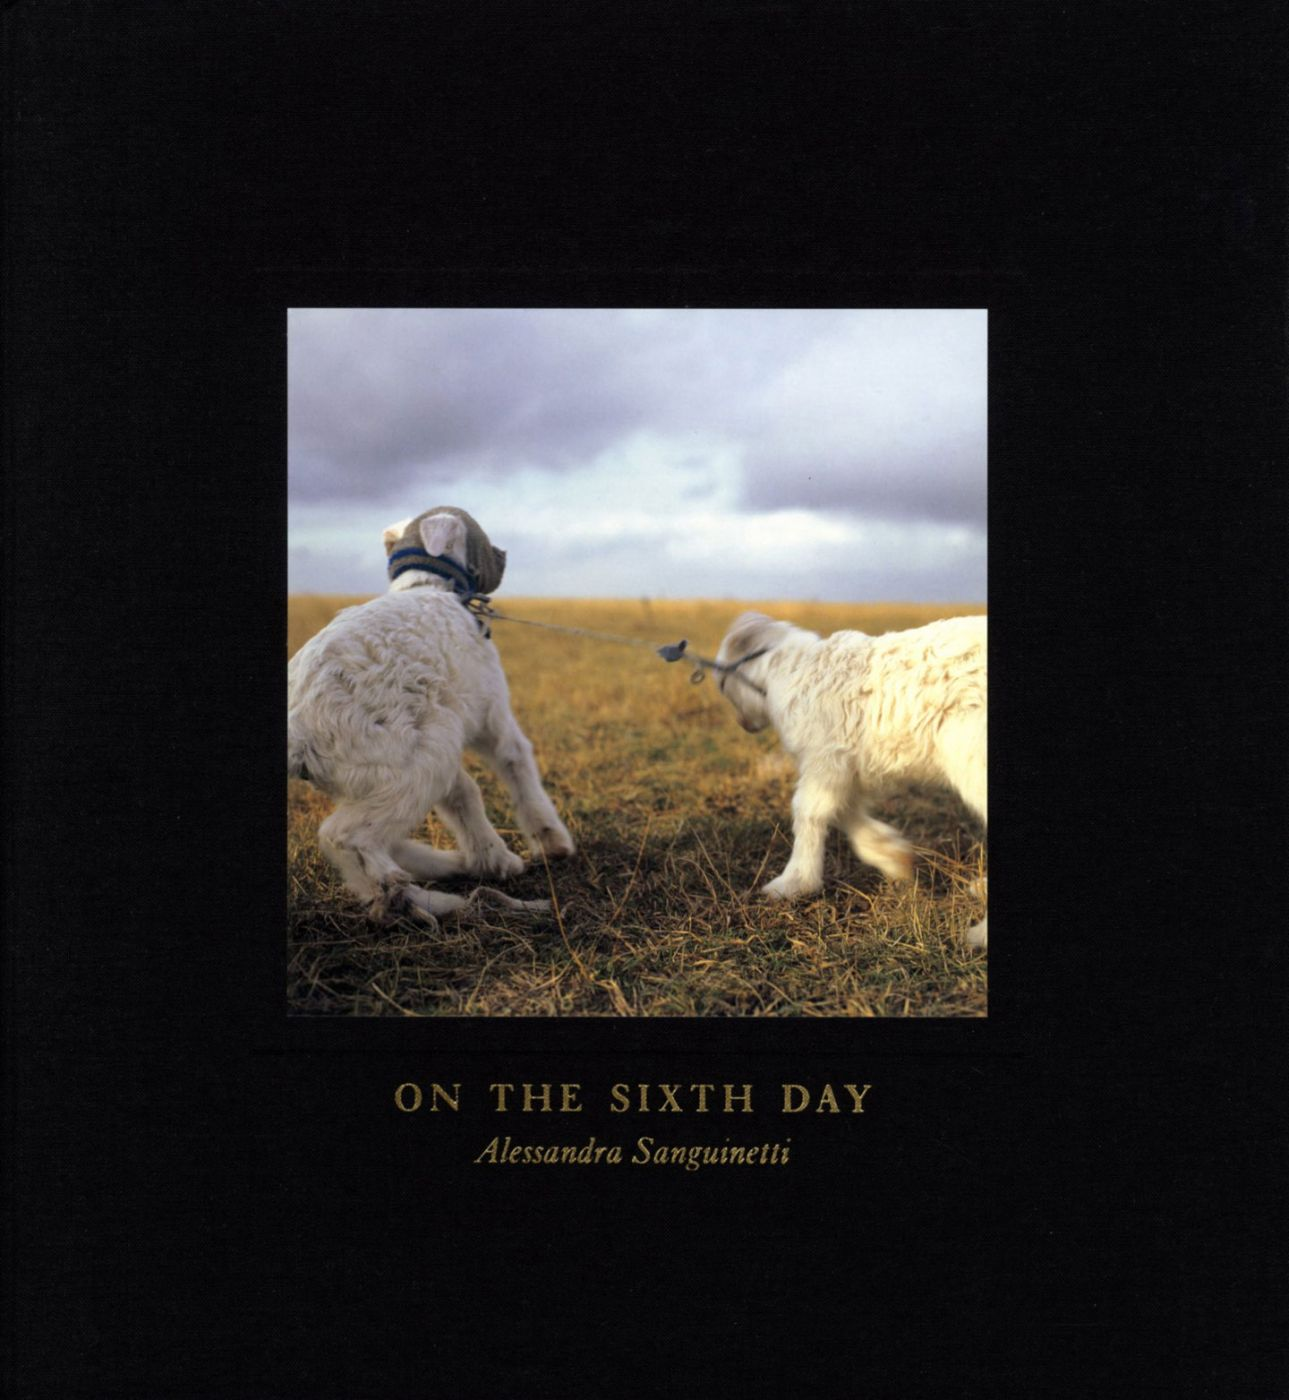 Alessandra Sanguinetti: On the Sixth Day [SIGNED]